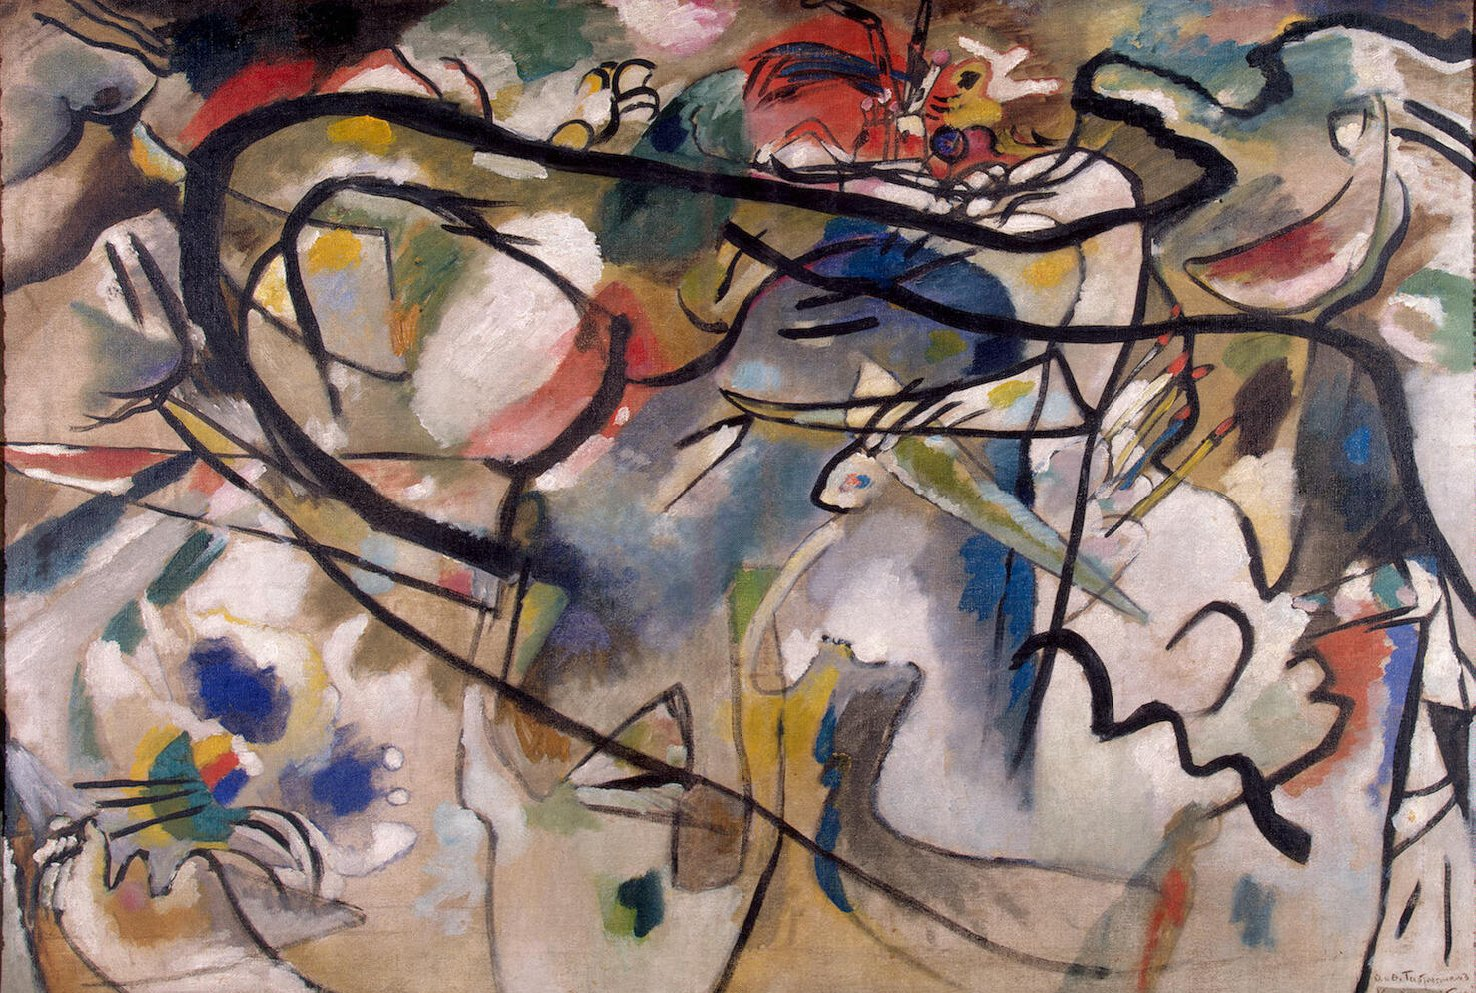 a biography of the life and painting works of wassily kandinsky Wassily wassilyevich kandinsky  he started painting studies (life-drawing,  biography and works of wassily kandinsky.